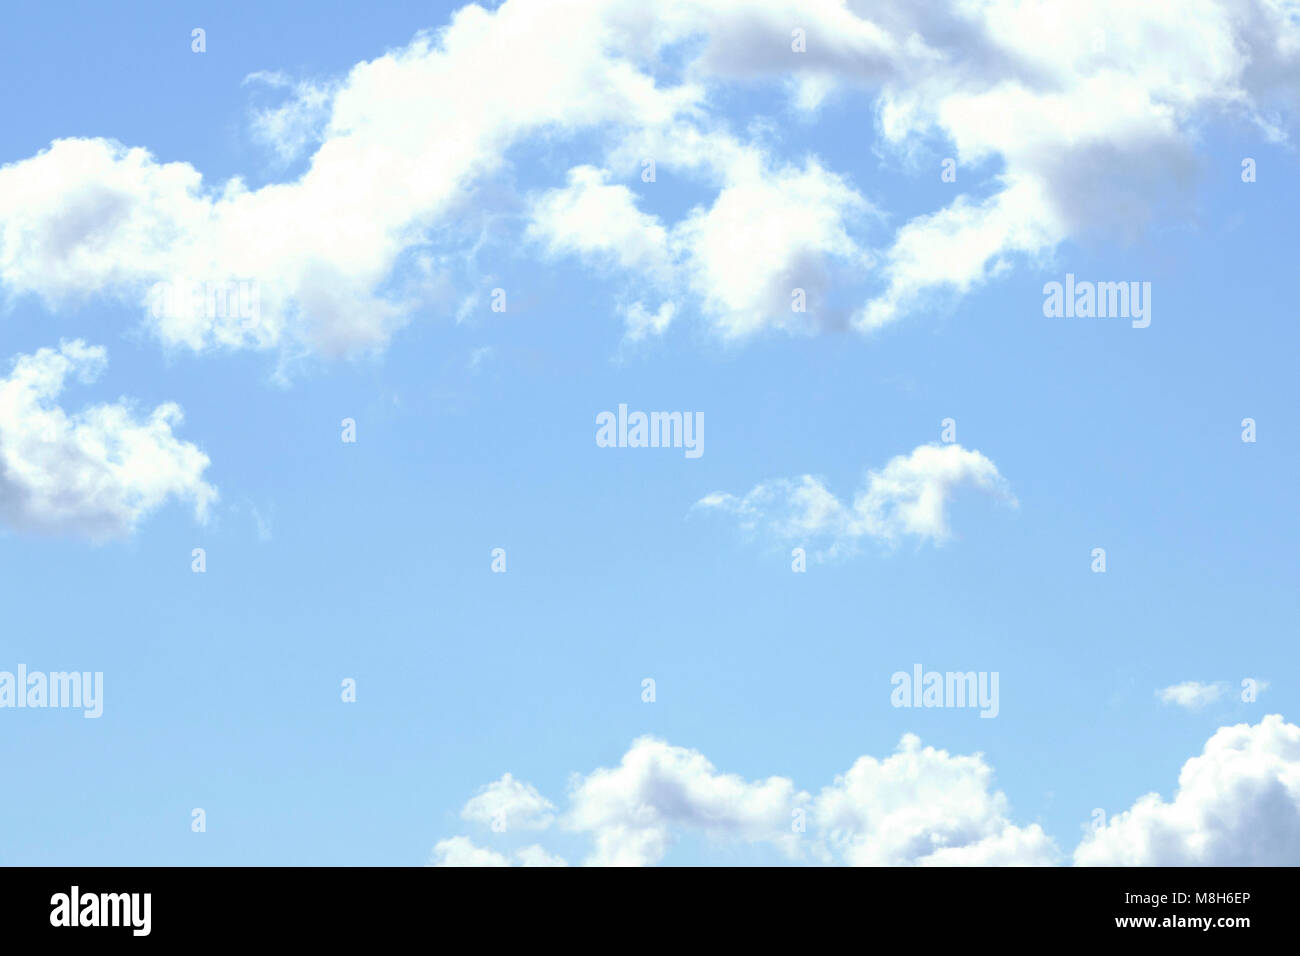 at sunset with an infinite horizon and smooth clouds in a pale blue color tone - Stock Image